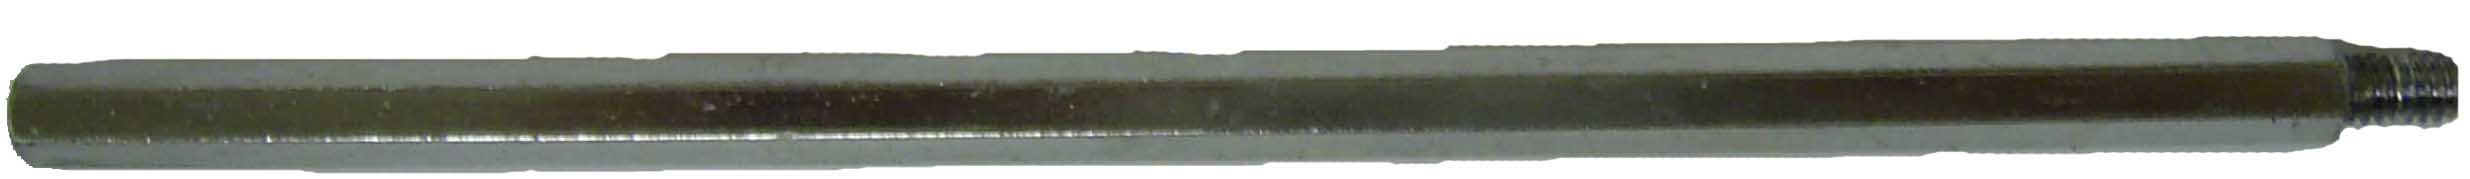 MOUNTING BOLT: 15A-002